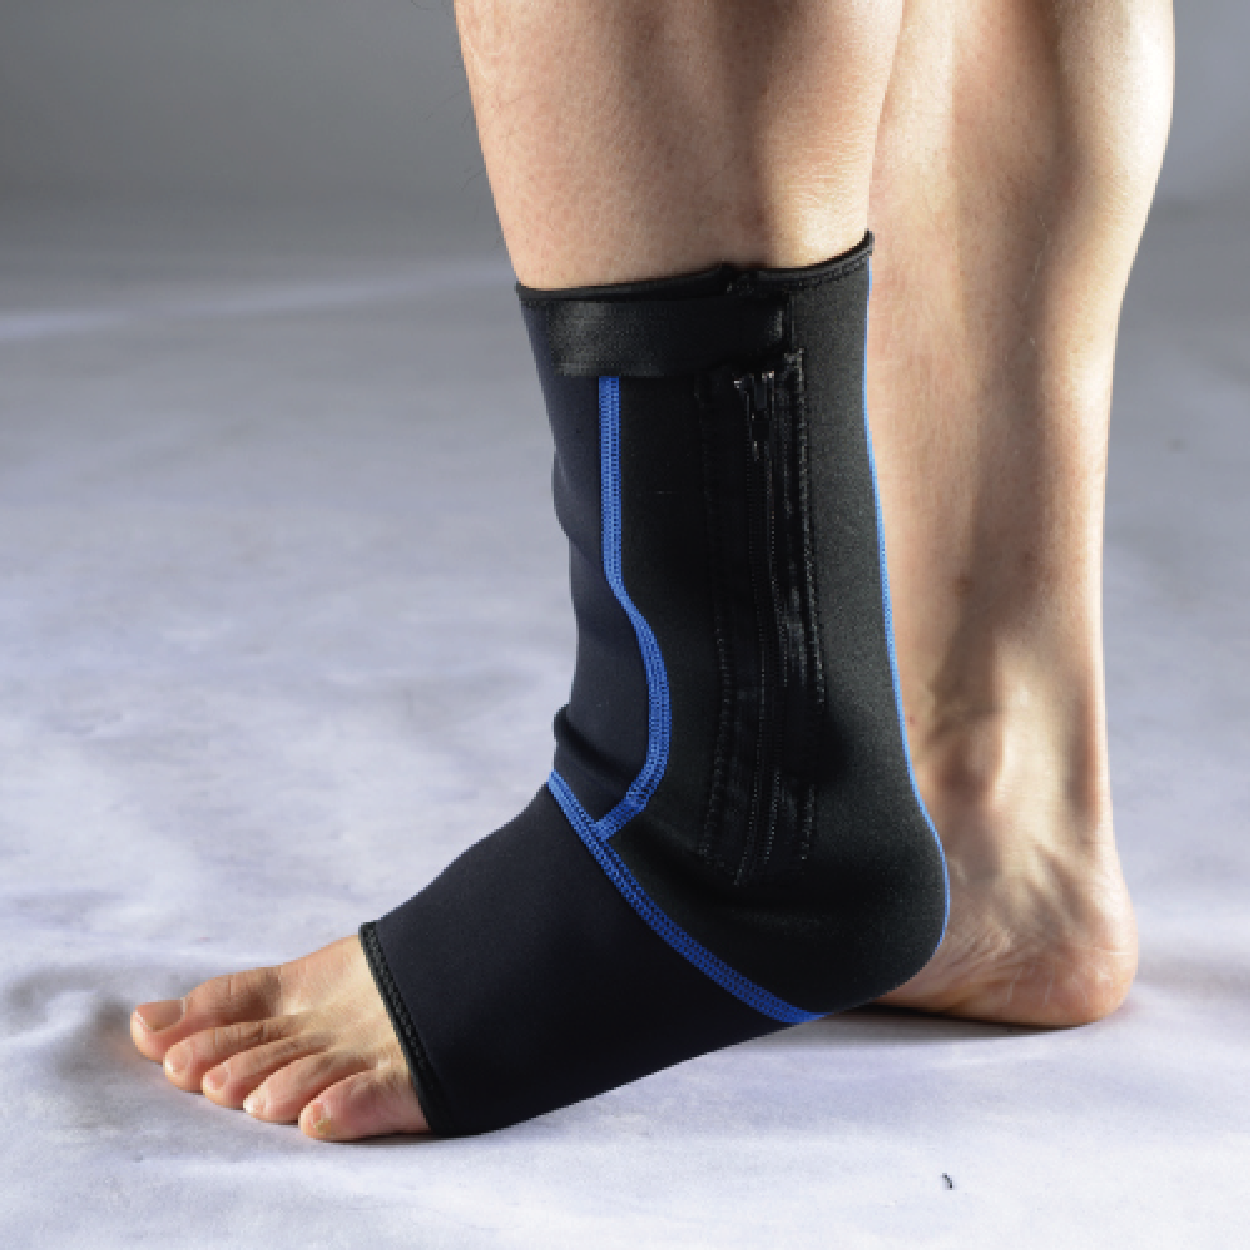 Liveup Sports Nylon & Spandex Ankle Support - L/XL - only5pounds.com